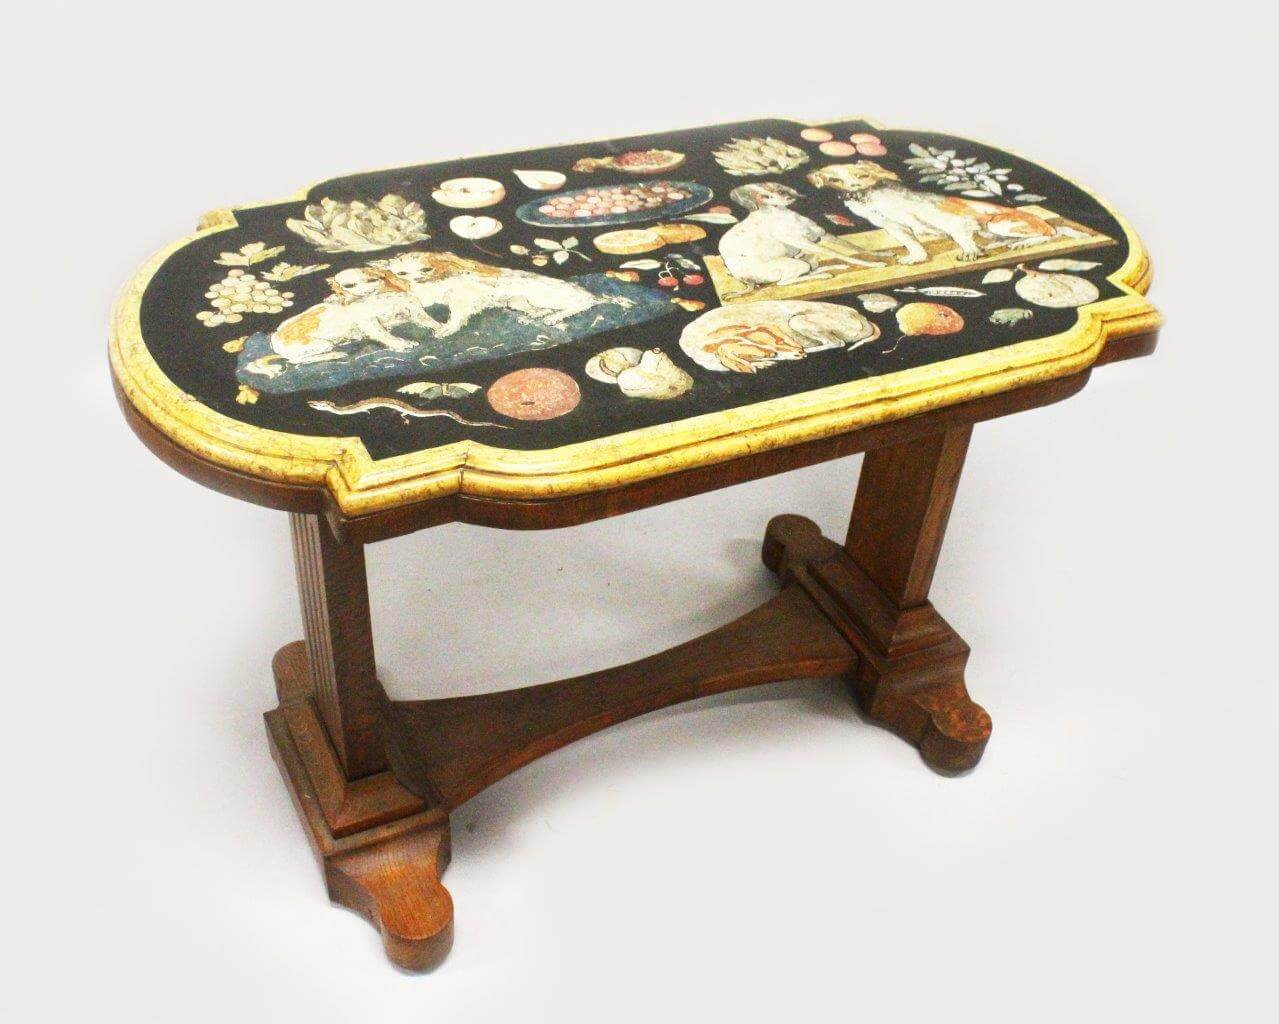 A Rare Early 19th Century Italian Scagliola Marble Top Table /Fine Auctioneers & Valuers